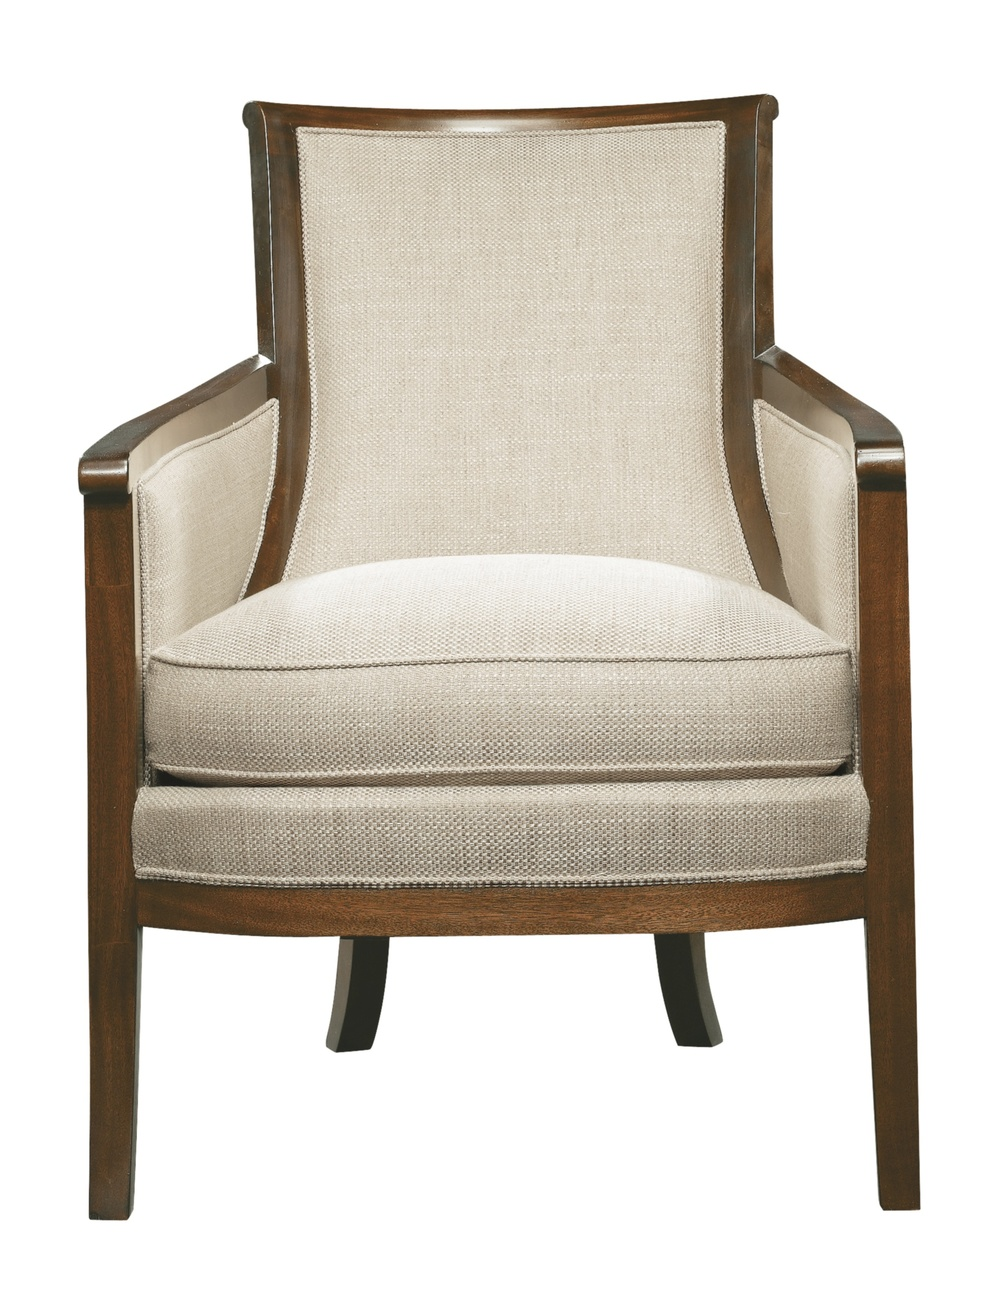 Hickory Chair - Breck Chair